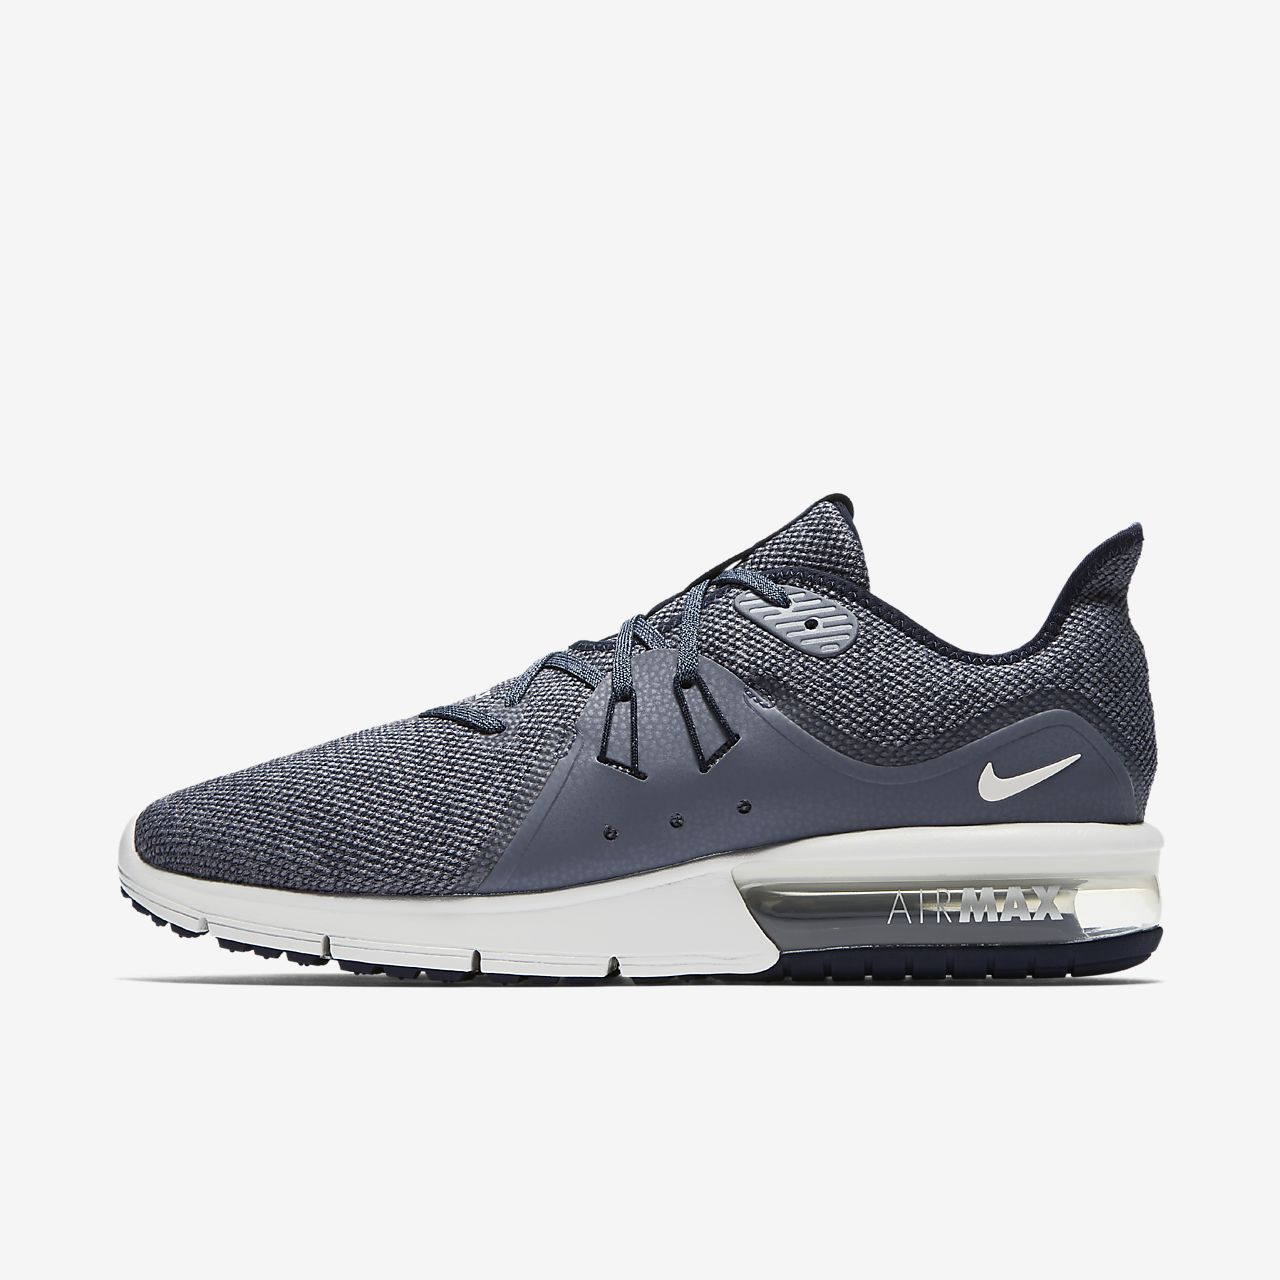 nike air max sequent 3 men's